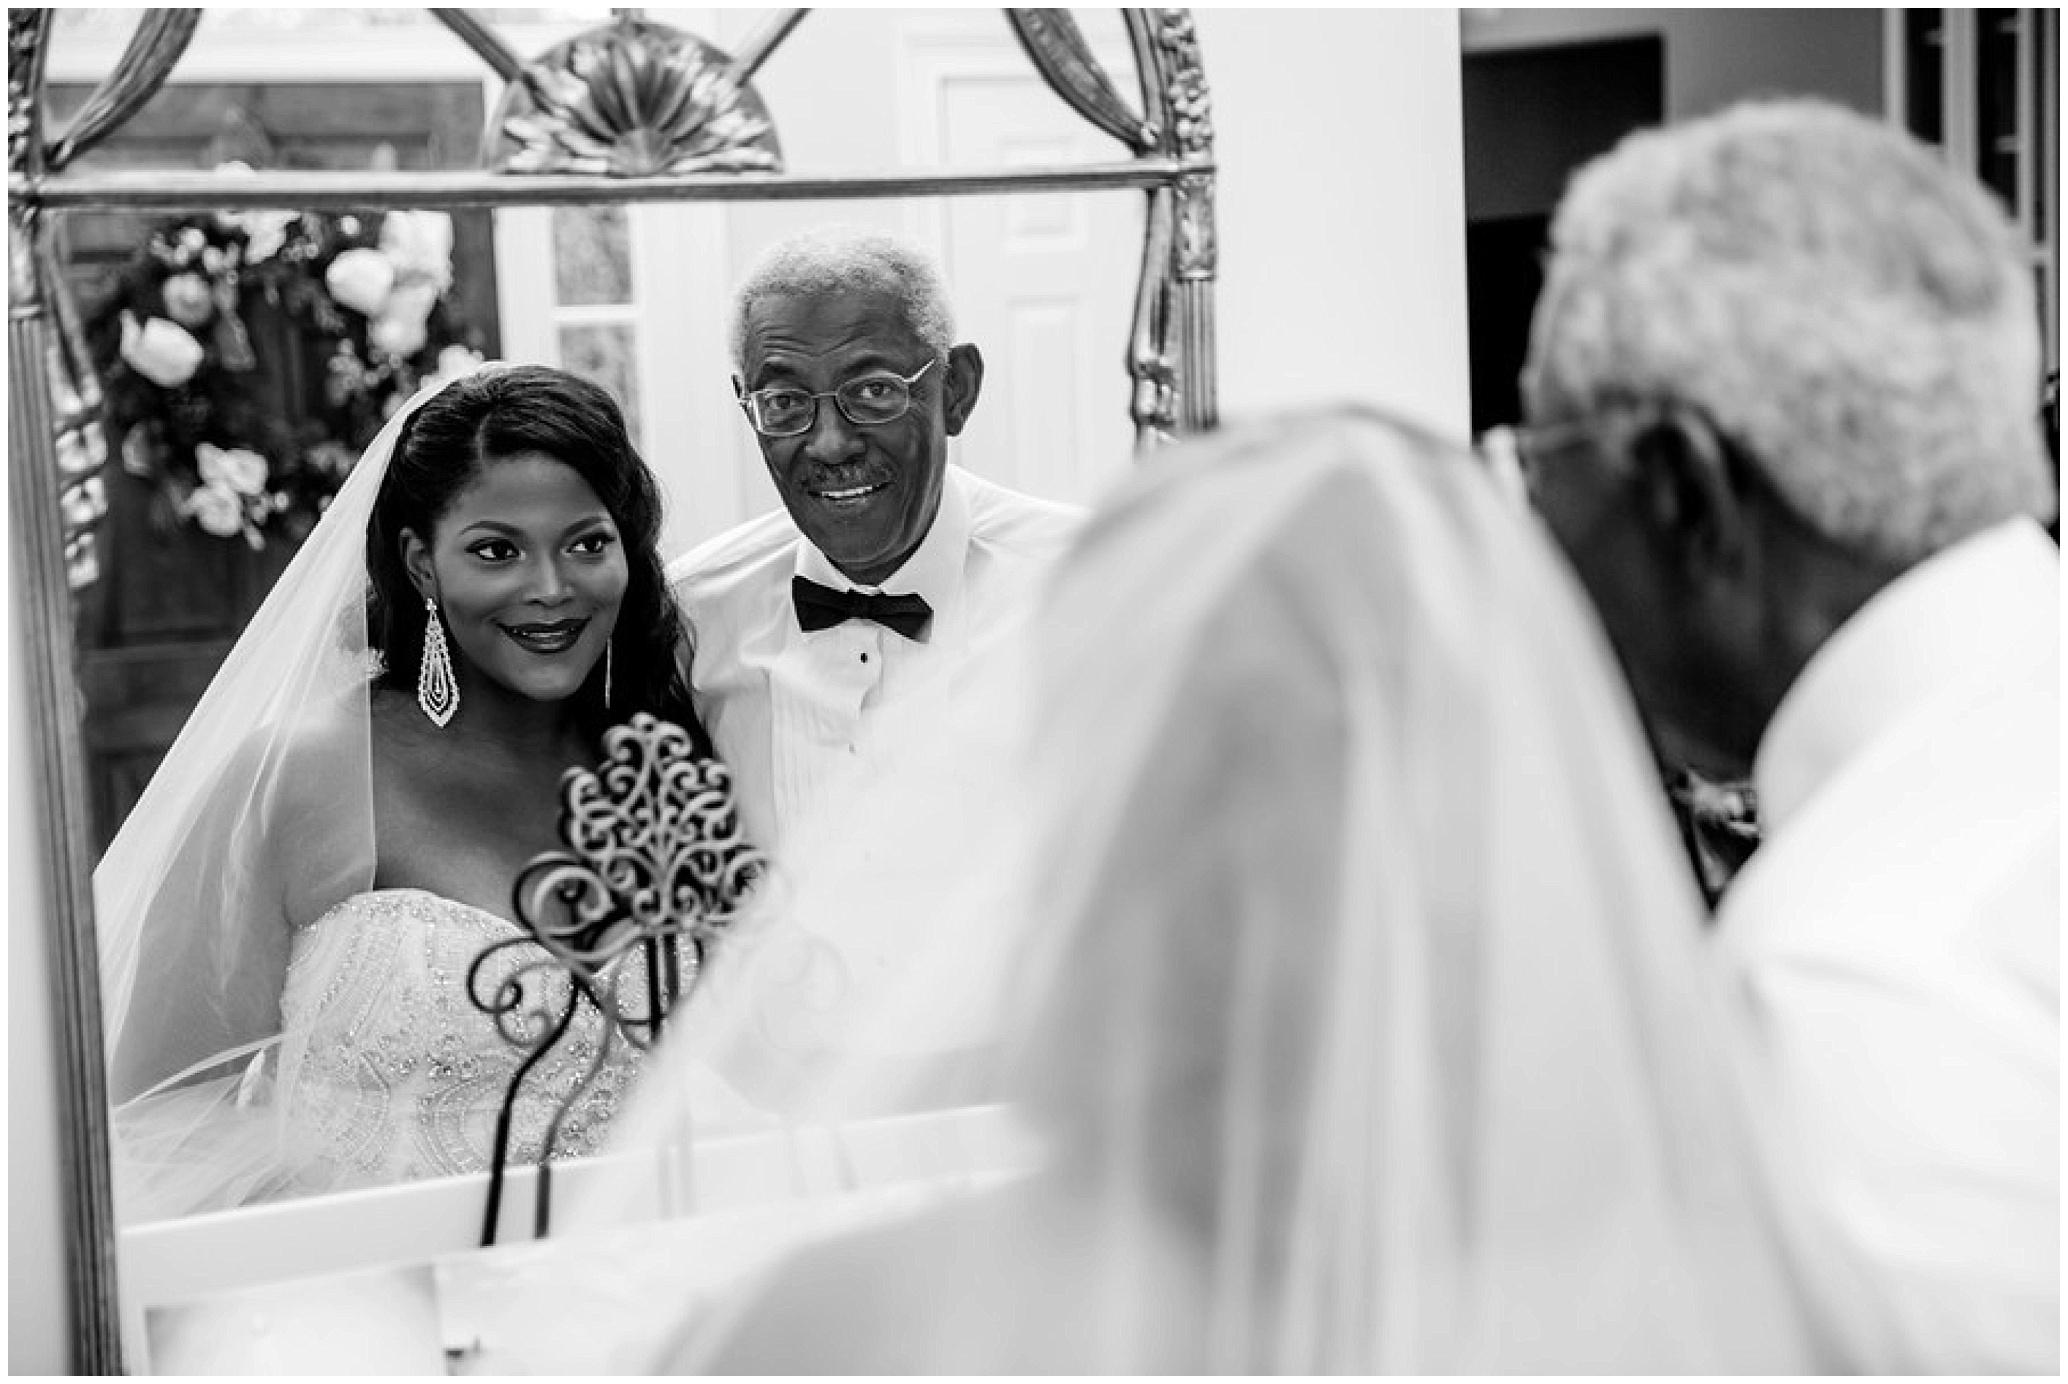 weddings_by_christopher-1280